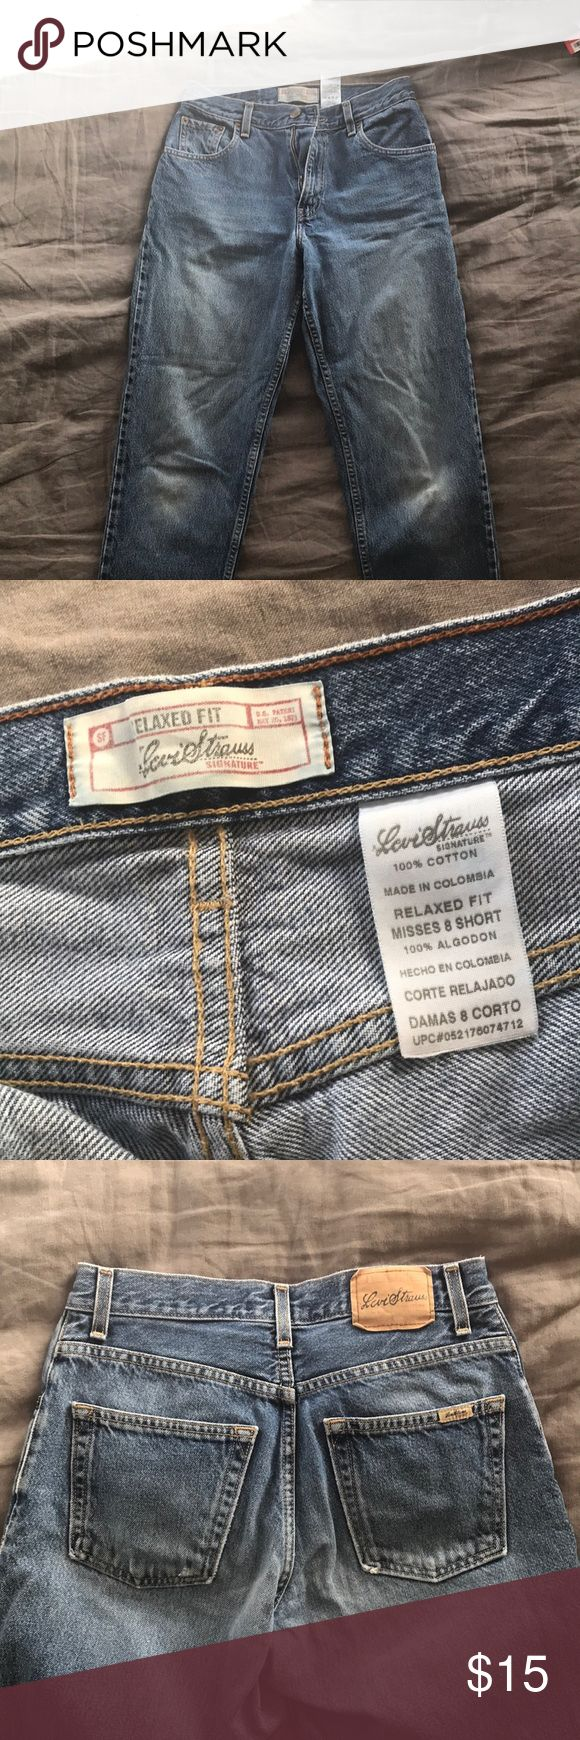 "Signature by Levi Strauss relaxed fit jeans! Great condition and quality. Levi ""mom"" jeans. Size 8 short. Signature by Levi Strauss Jeans"